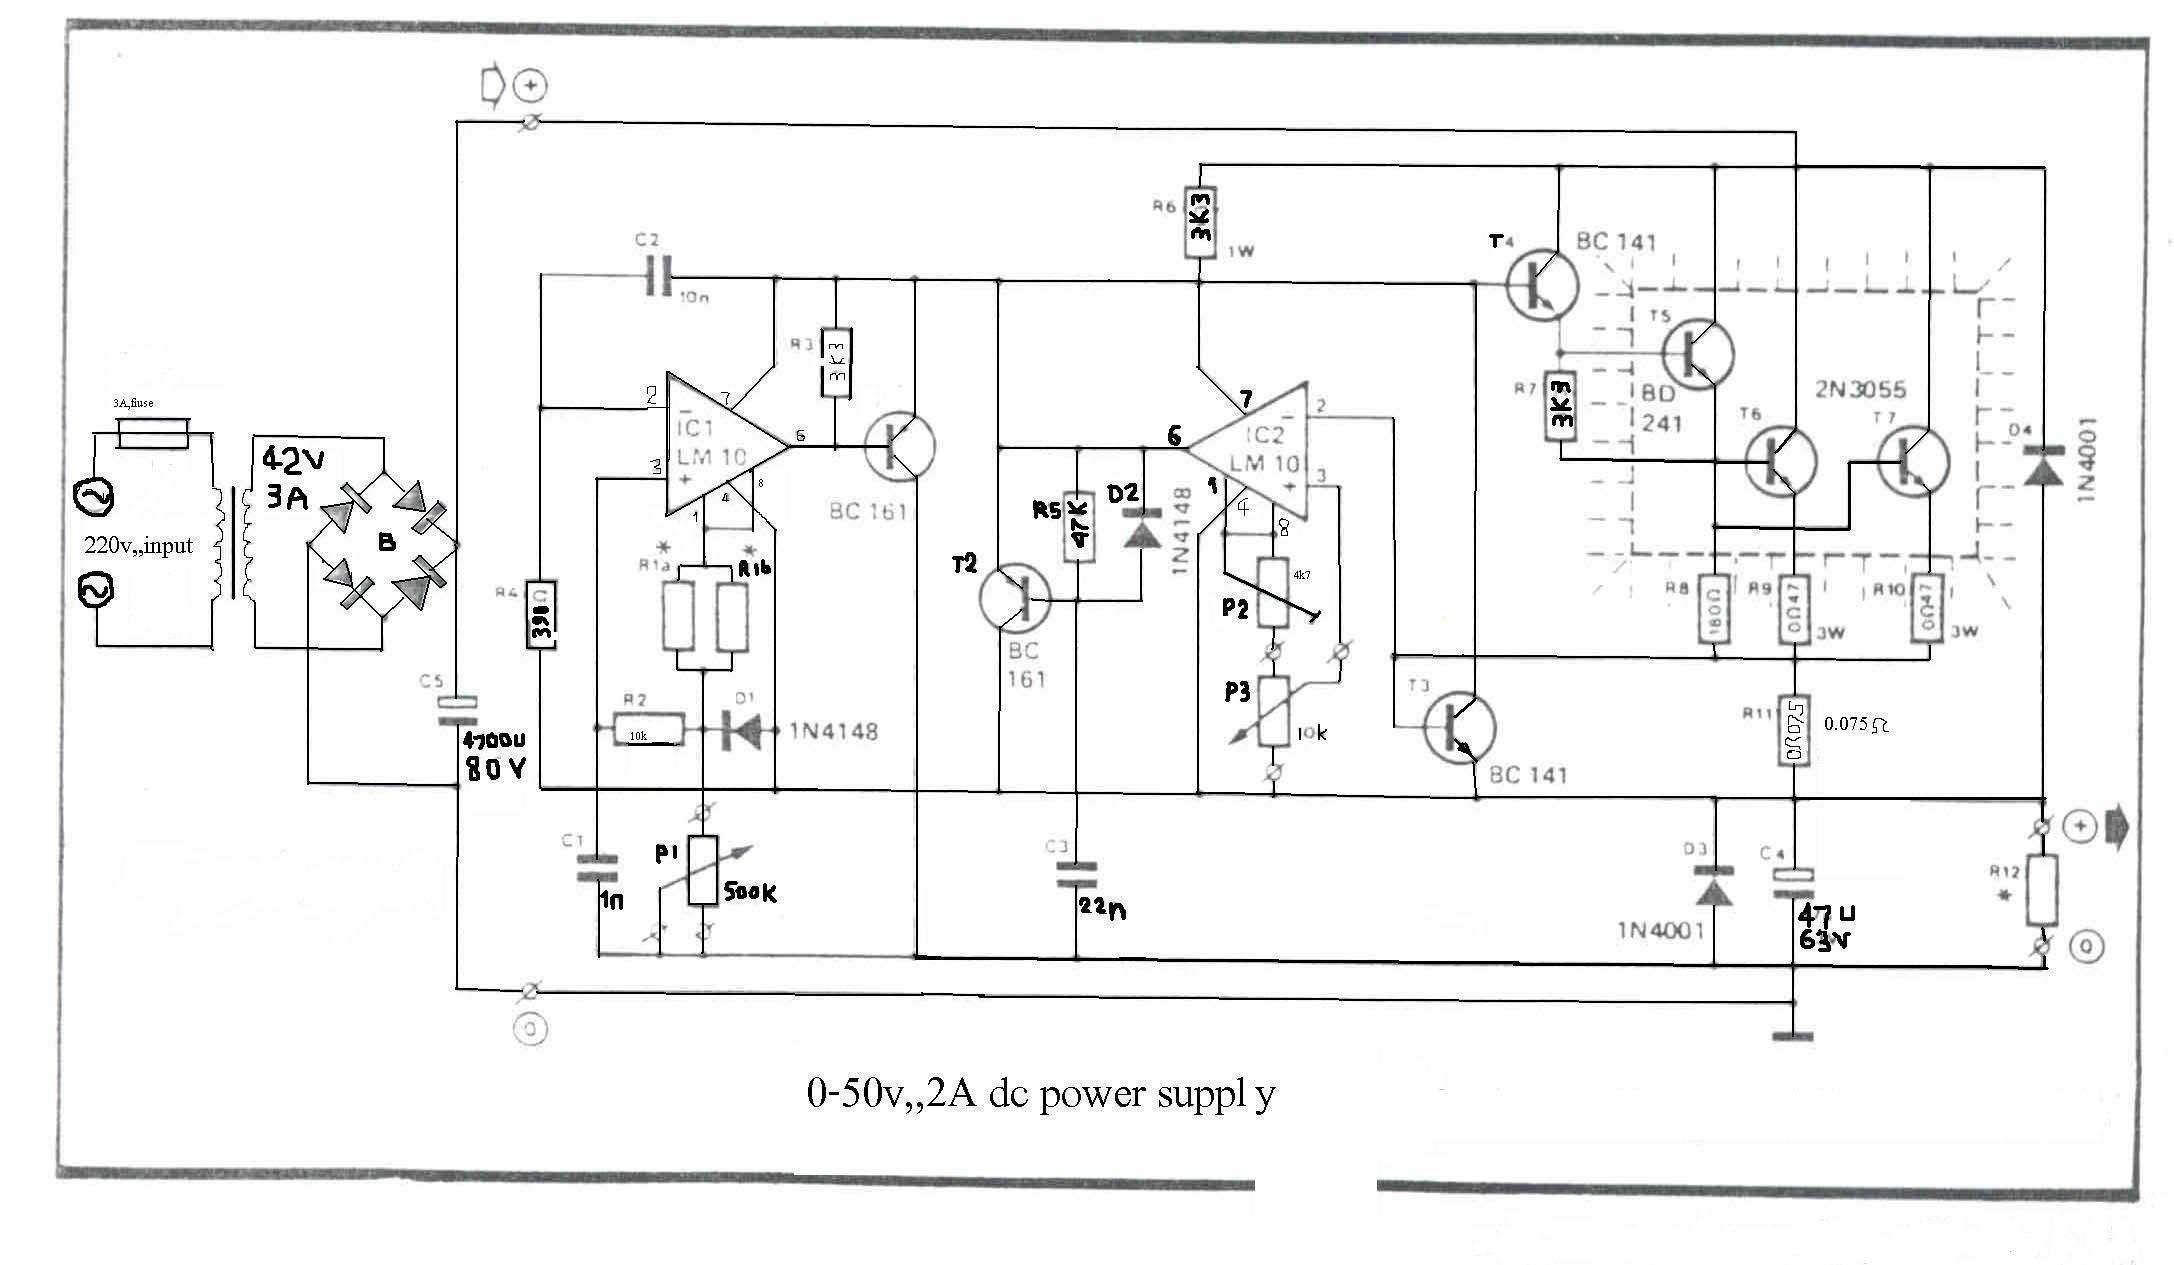 0-50V 2A Bench power supply circuit diagram and instructions